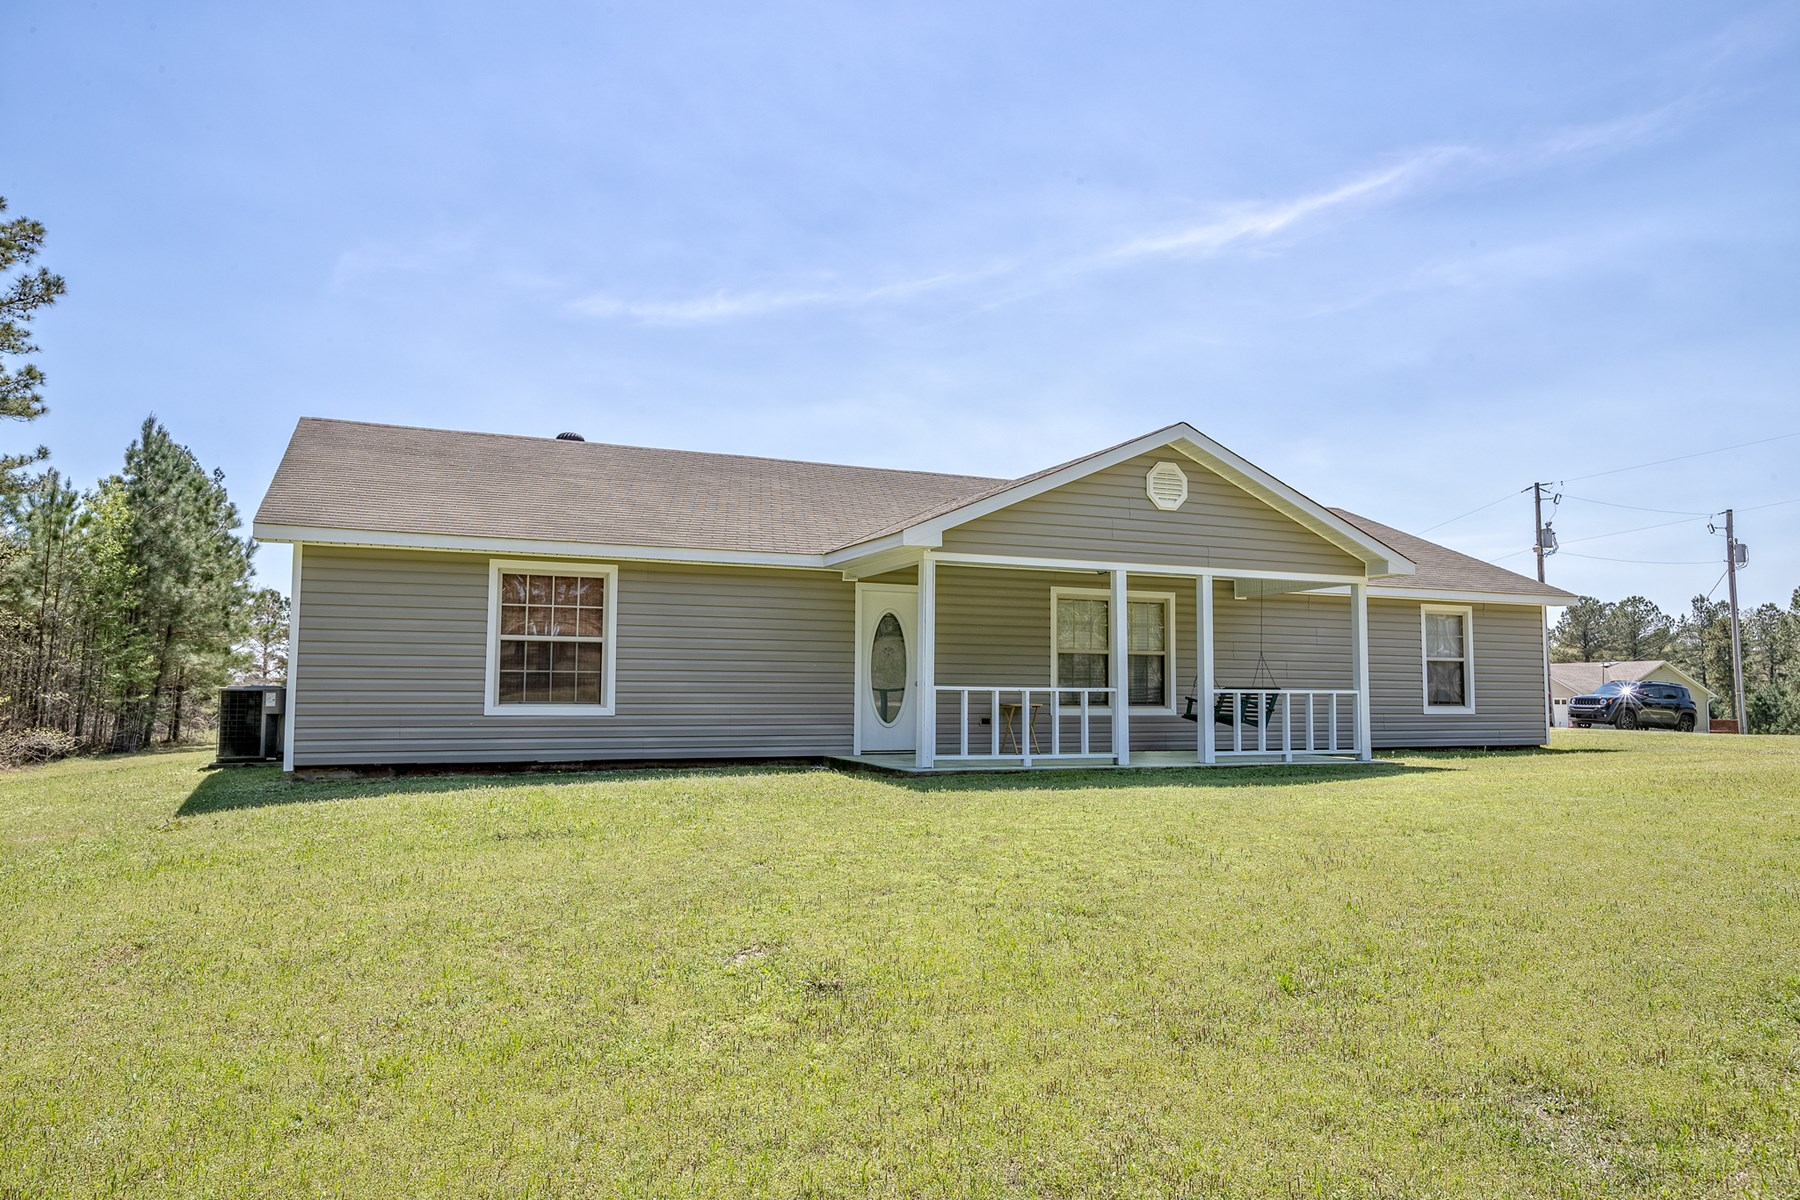 Home for sale in Bismarck, AR with land, Hot Spring County